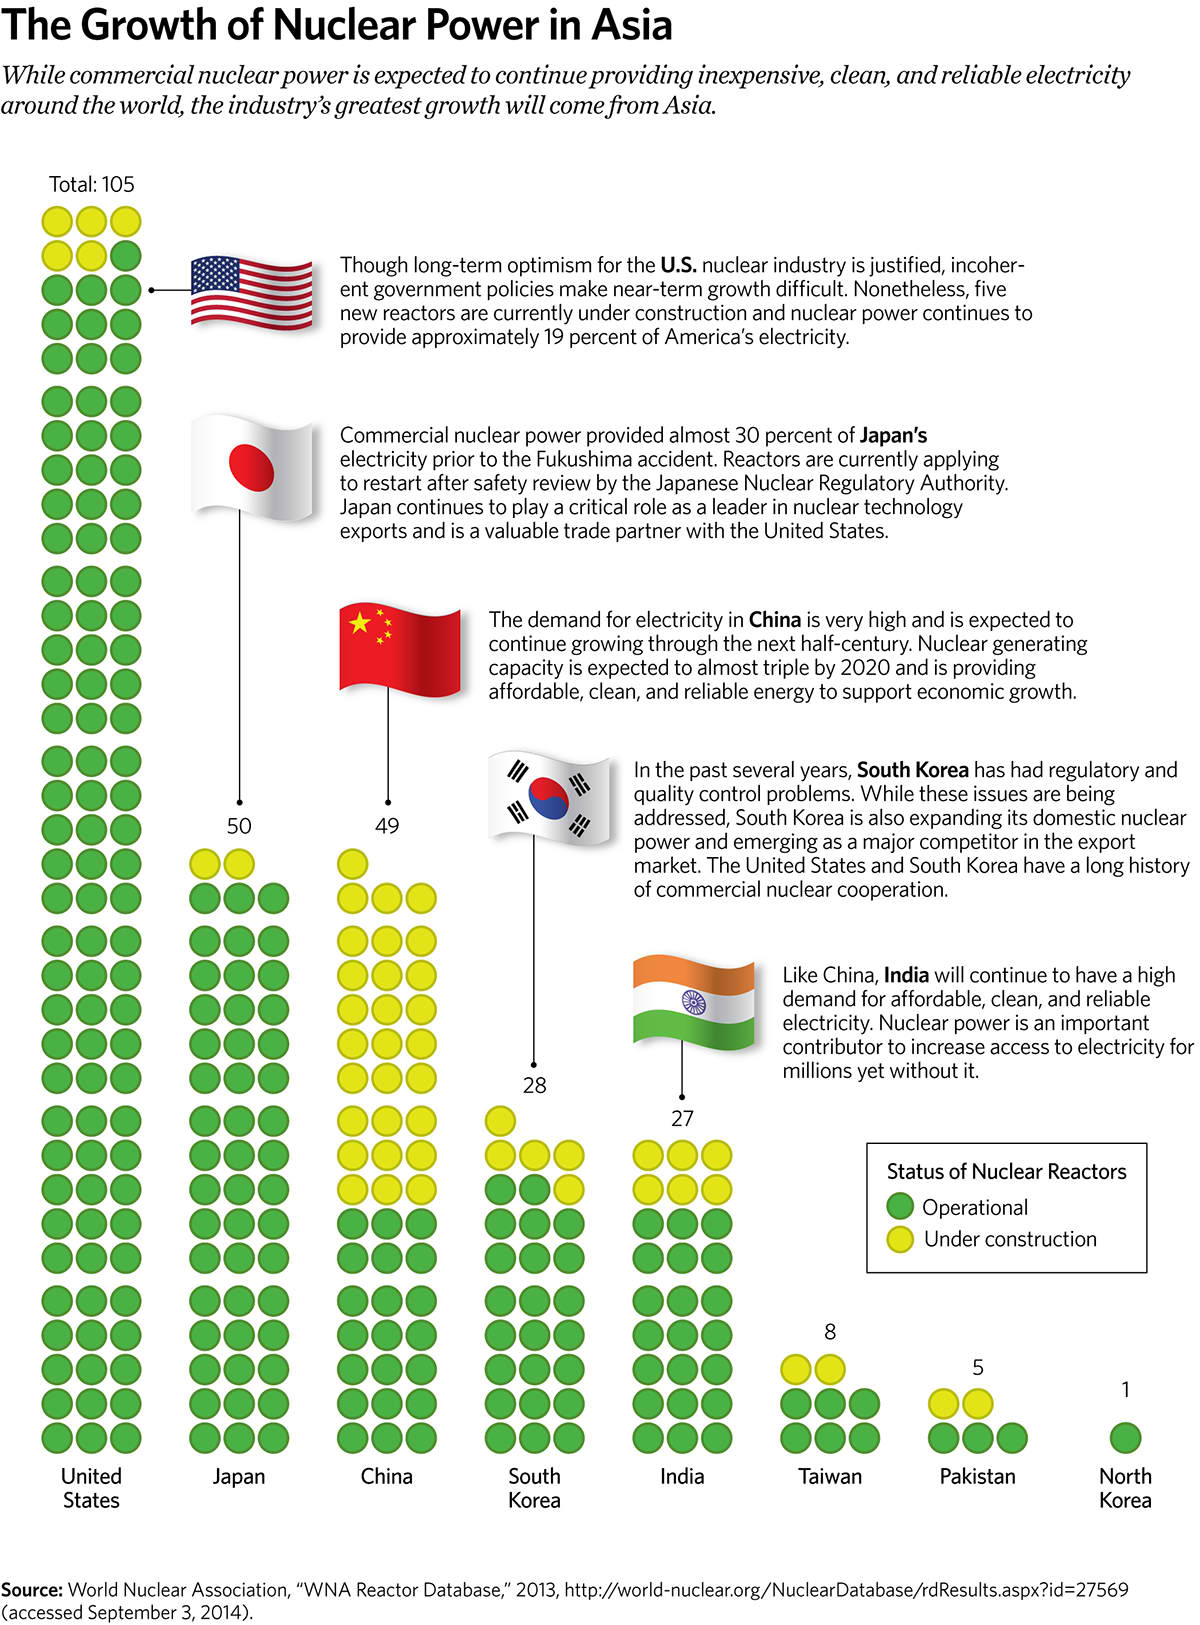 The Growth of Nuclear Power in Asia